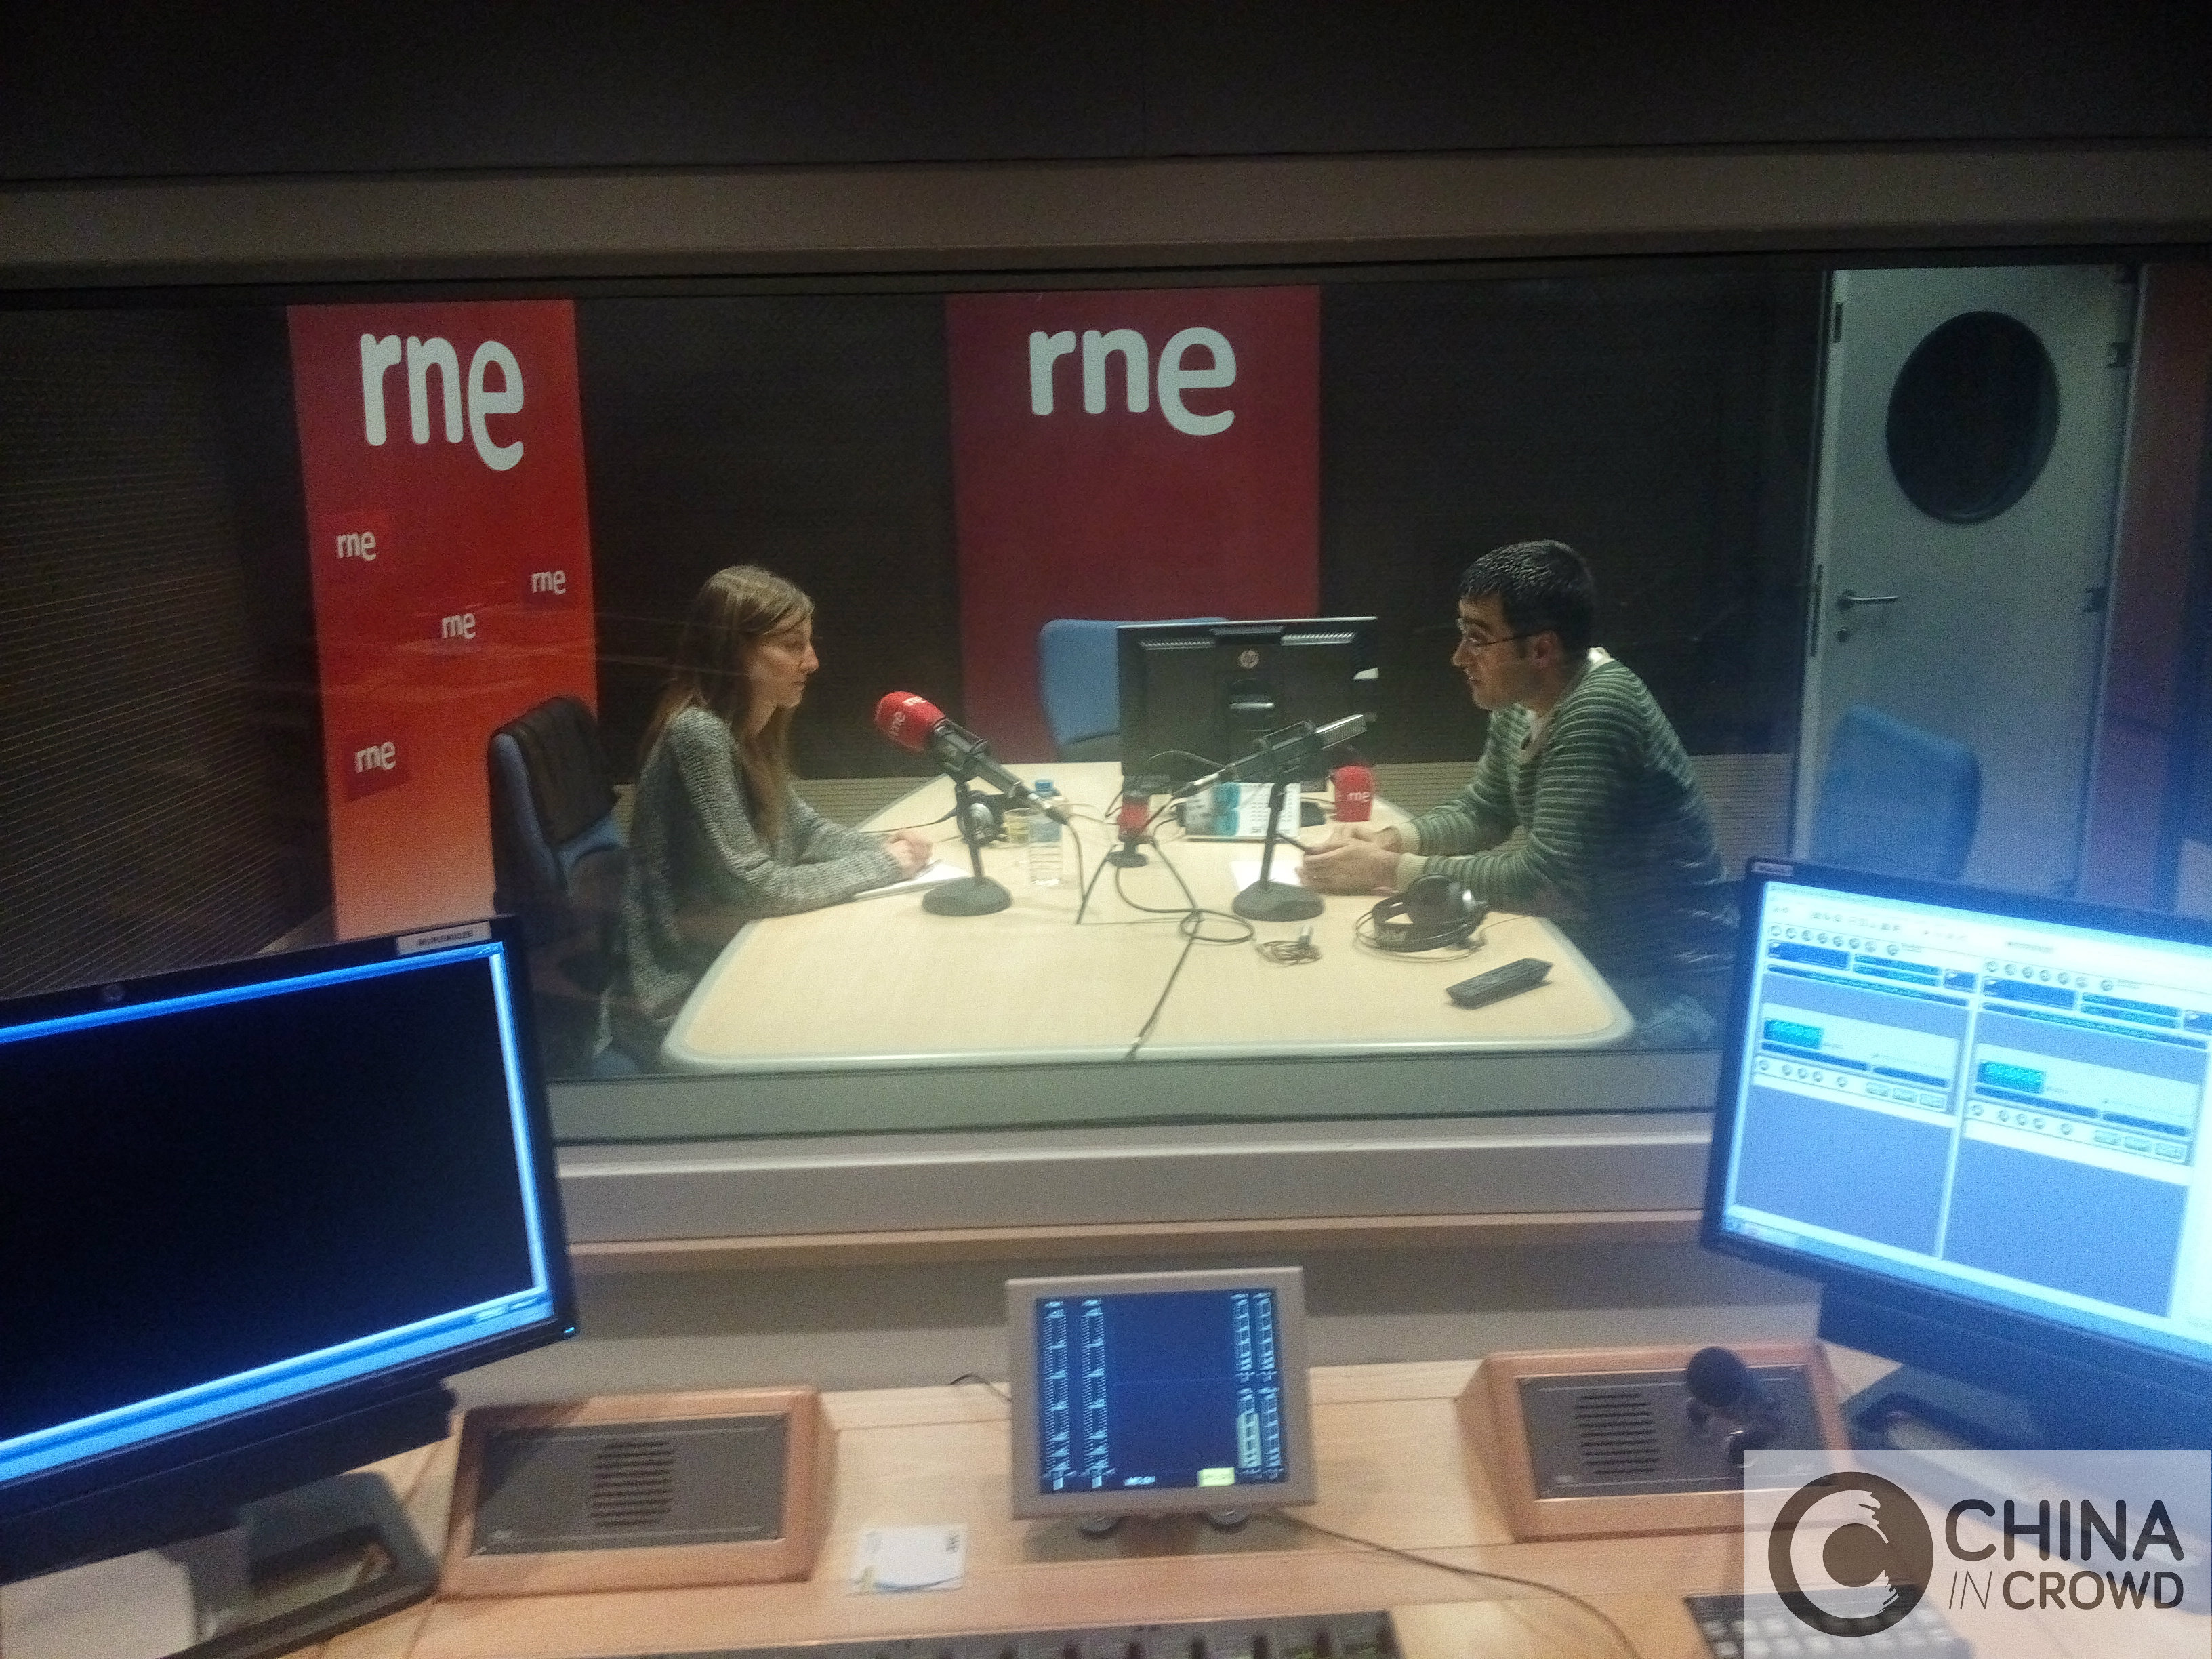 Entrevista en RNE CHINA IN CROWD